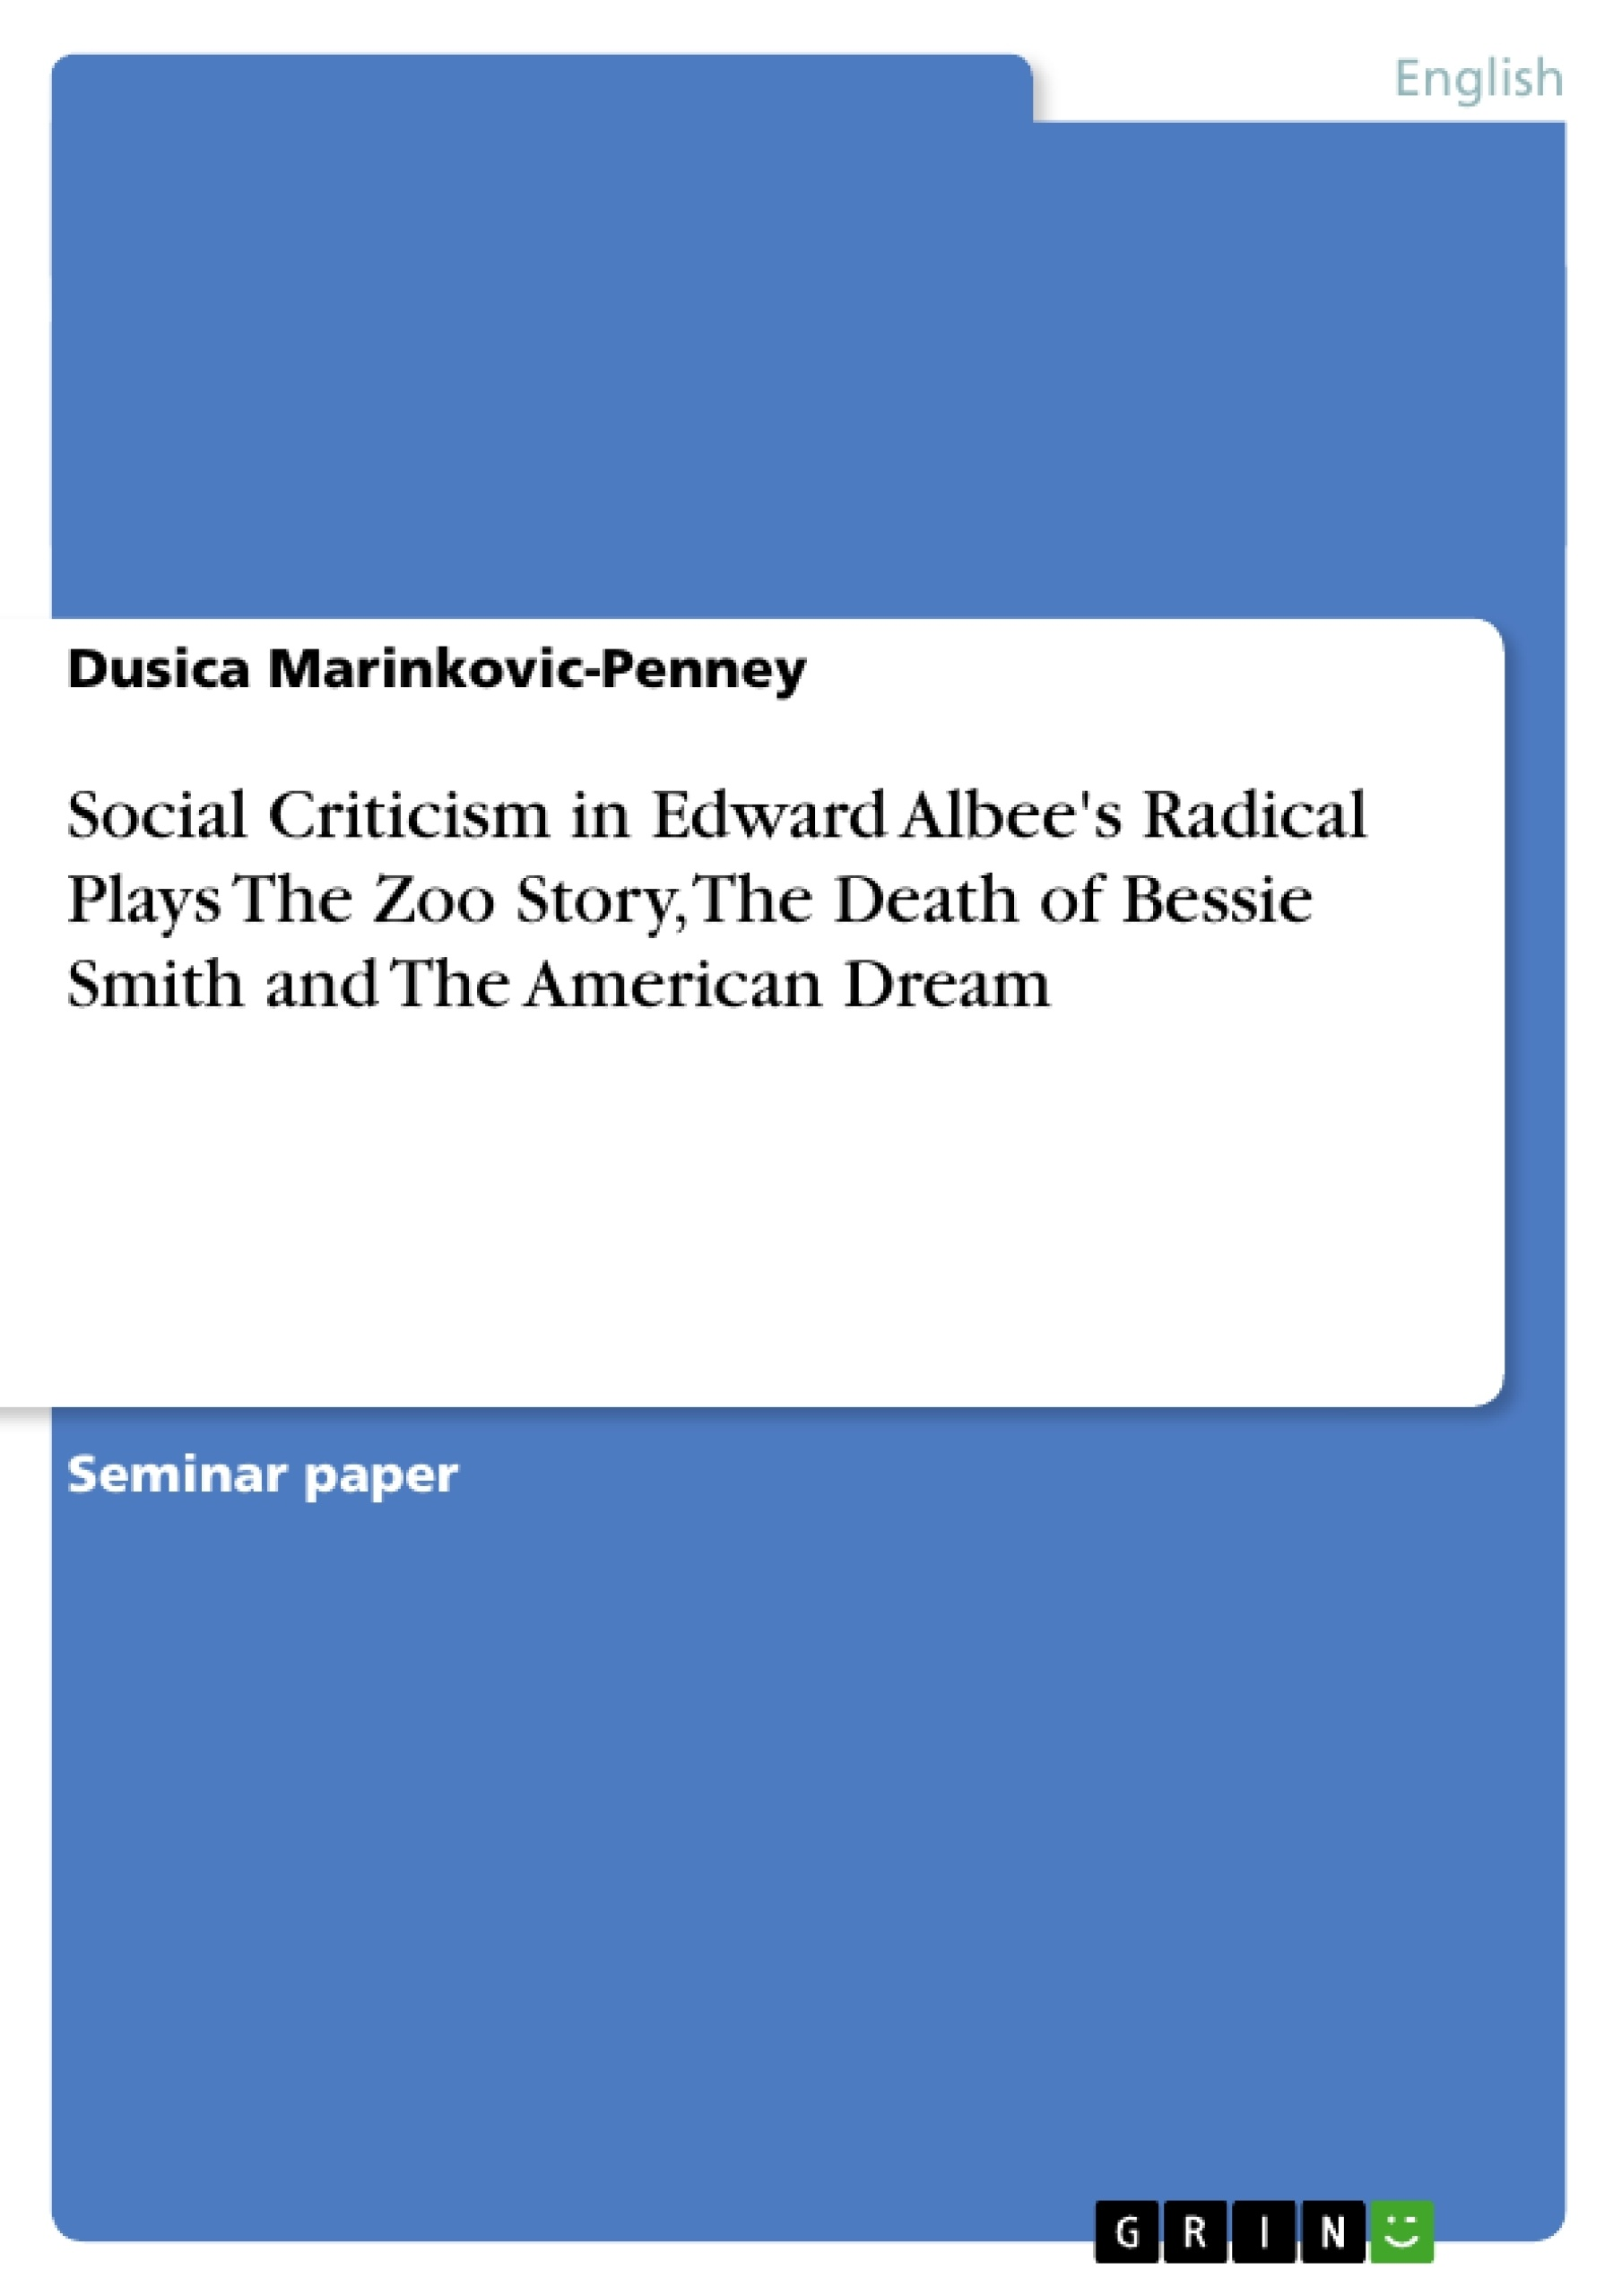 Title: Social Criticism in Edward Albee's Radical Plays The Zoo Story, The Death of Bessie Smith and The American Dream